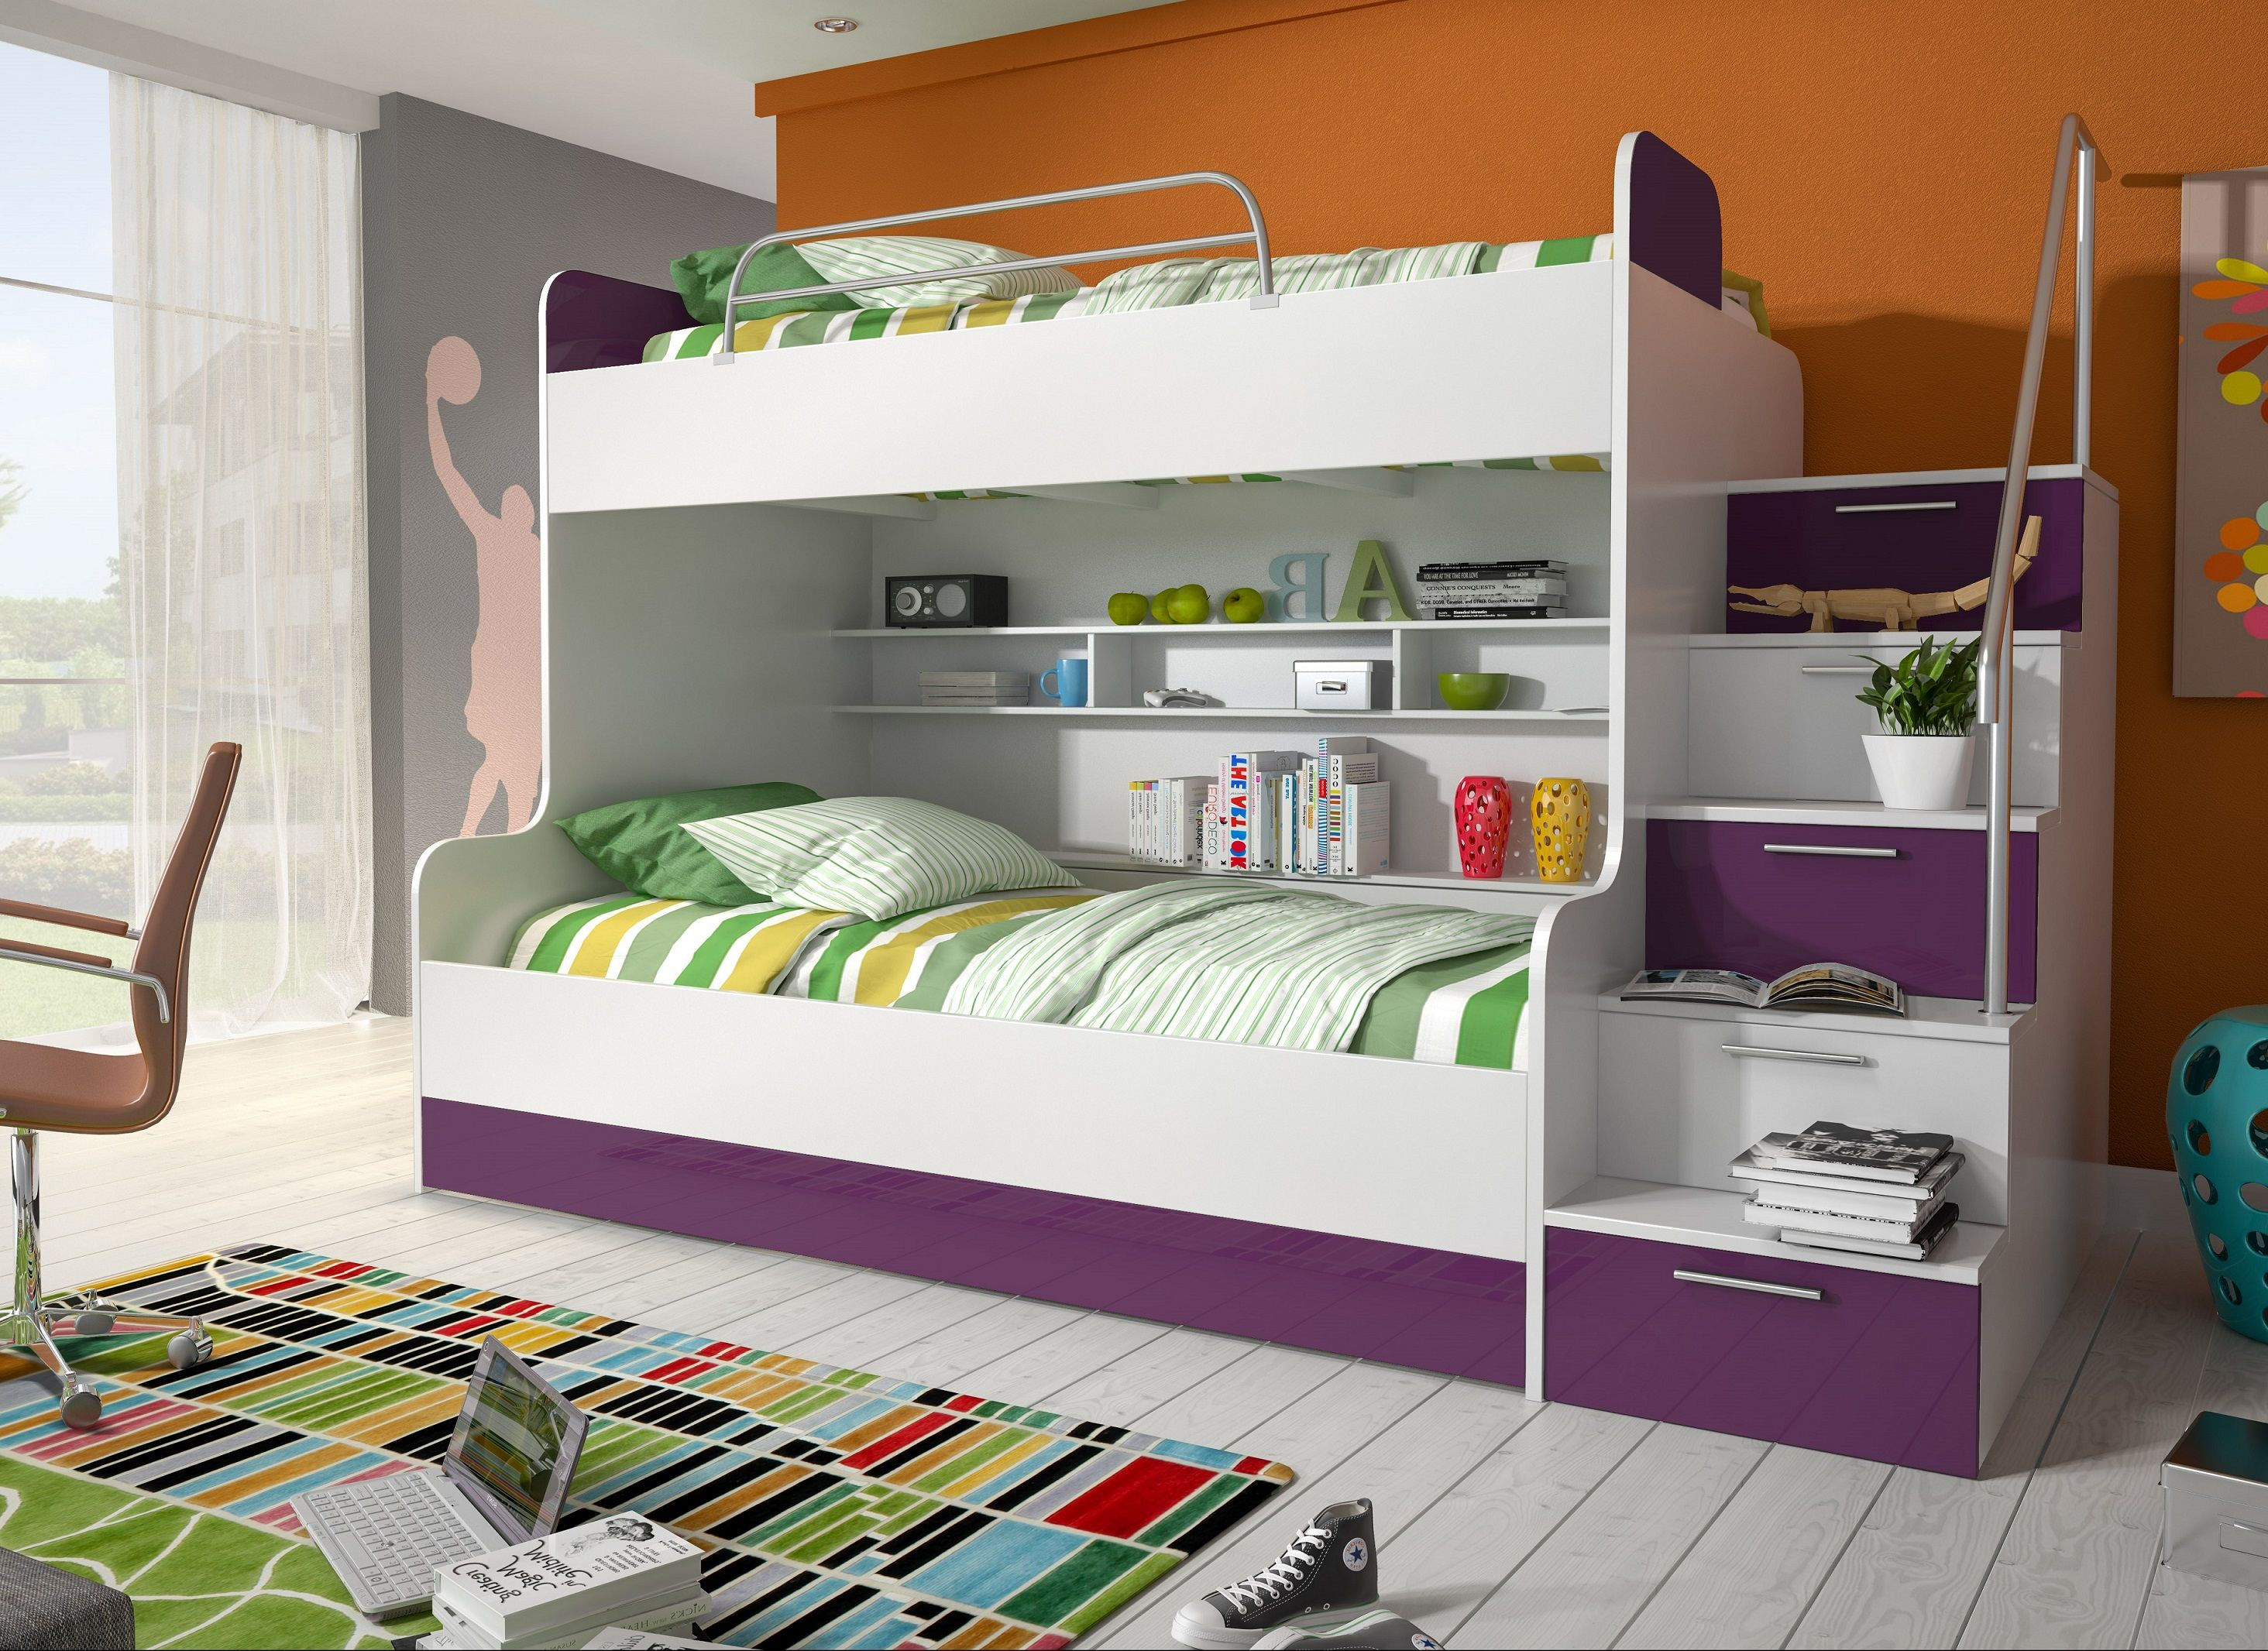 etagenbetten f r kinder mit treppen m belideen. Black Bedroom Furniture Sets. Home Design Ideas